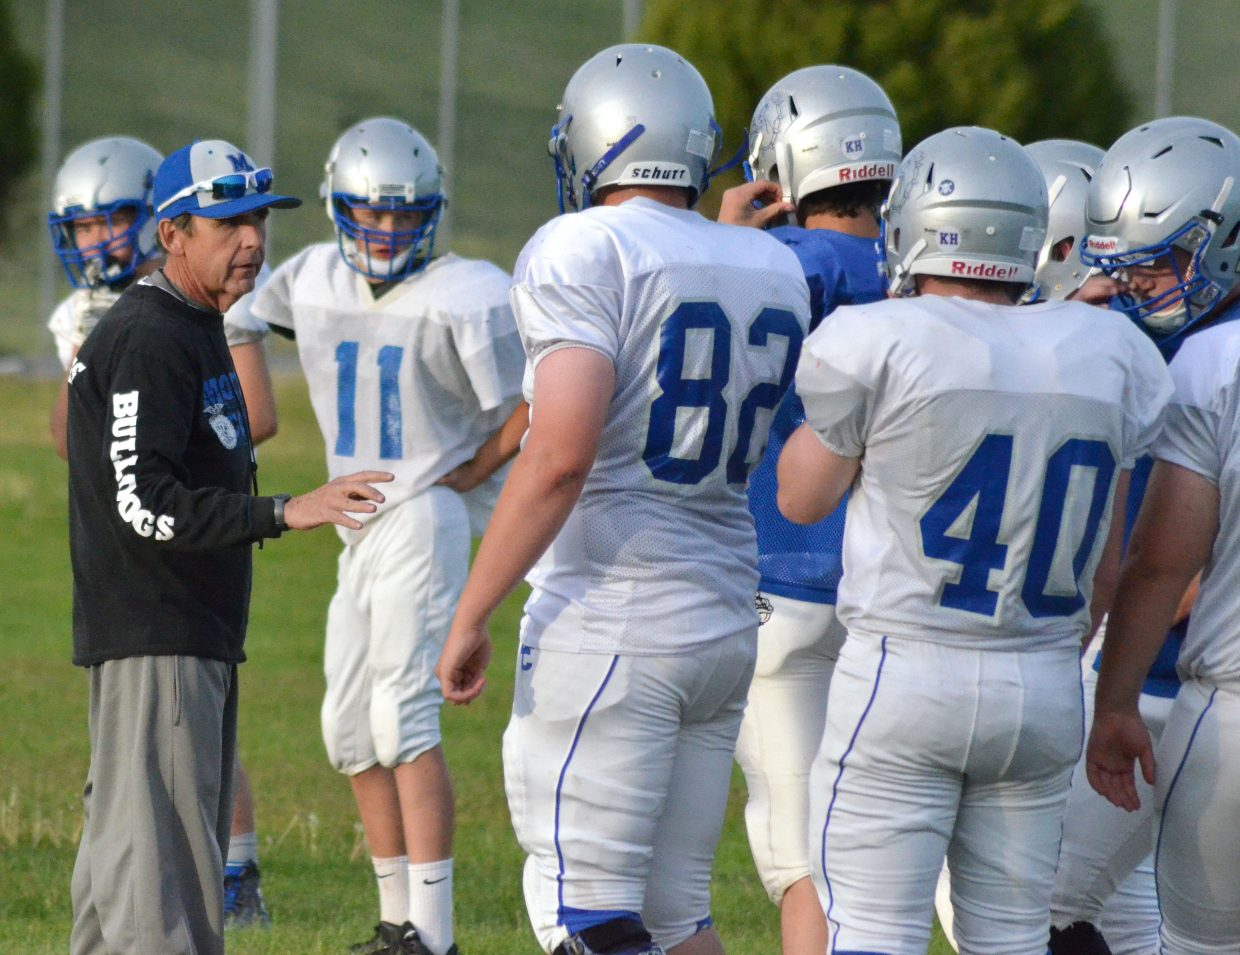 Moffat County High School coach Keith Gille guides players during the Bulldogs' skills camp on the MCHS practice field.